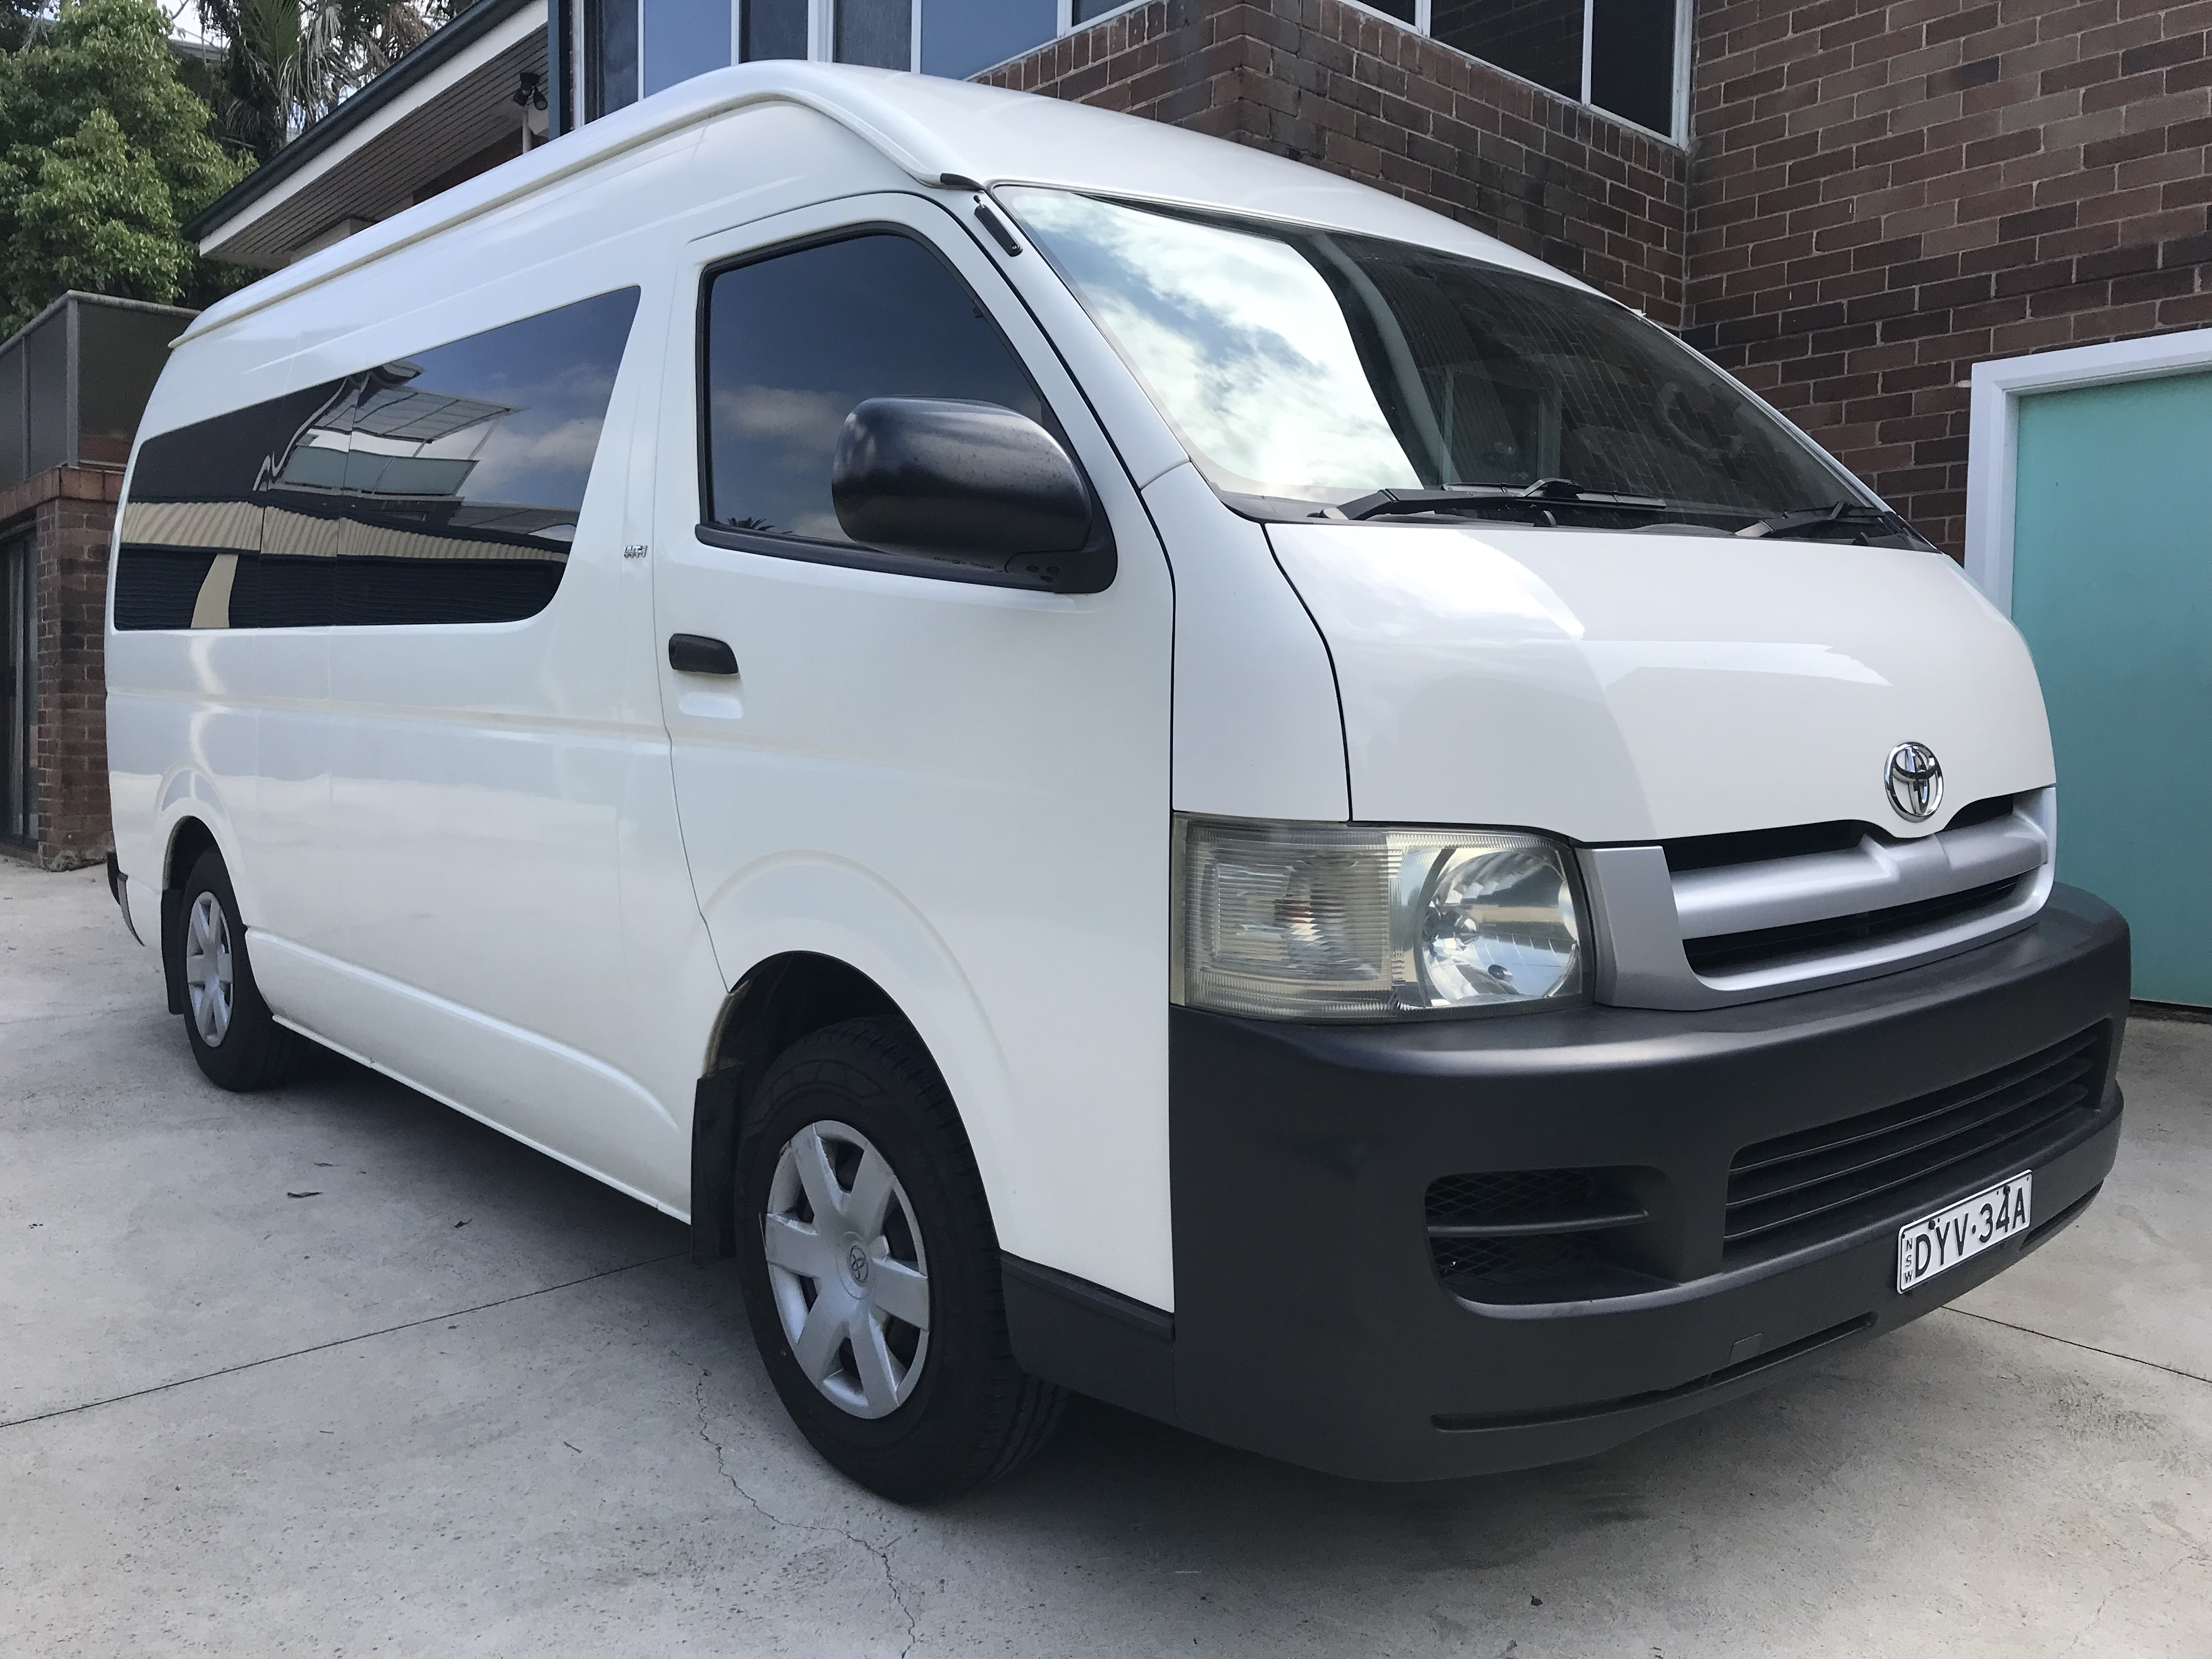 Picture of Jaime's 2007 Toyota Hiace Commuter